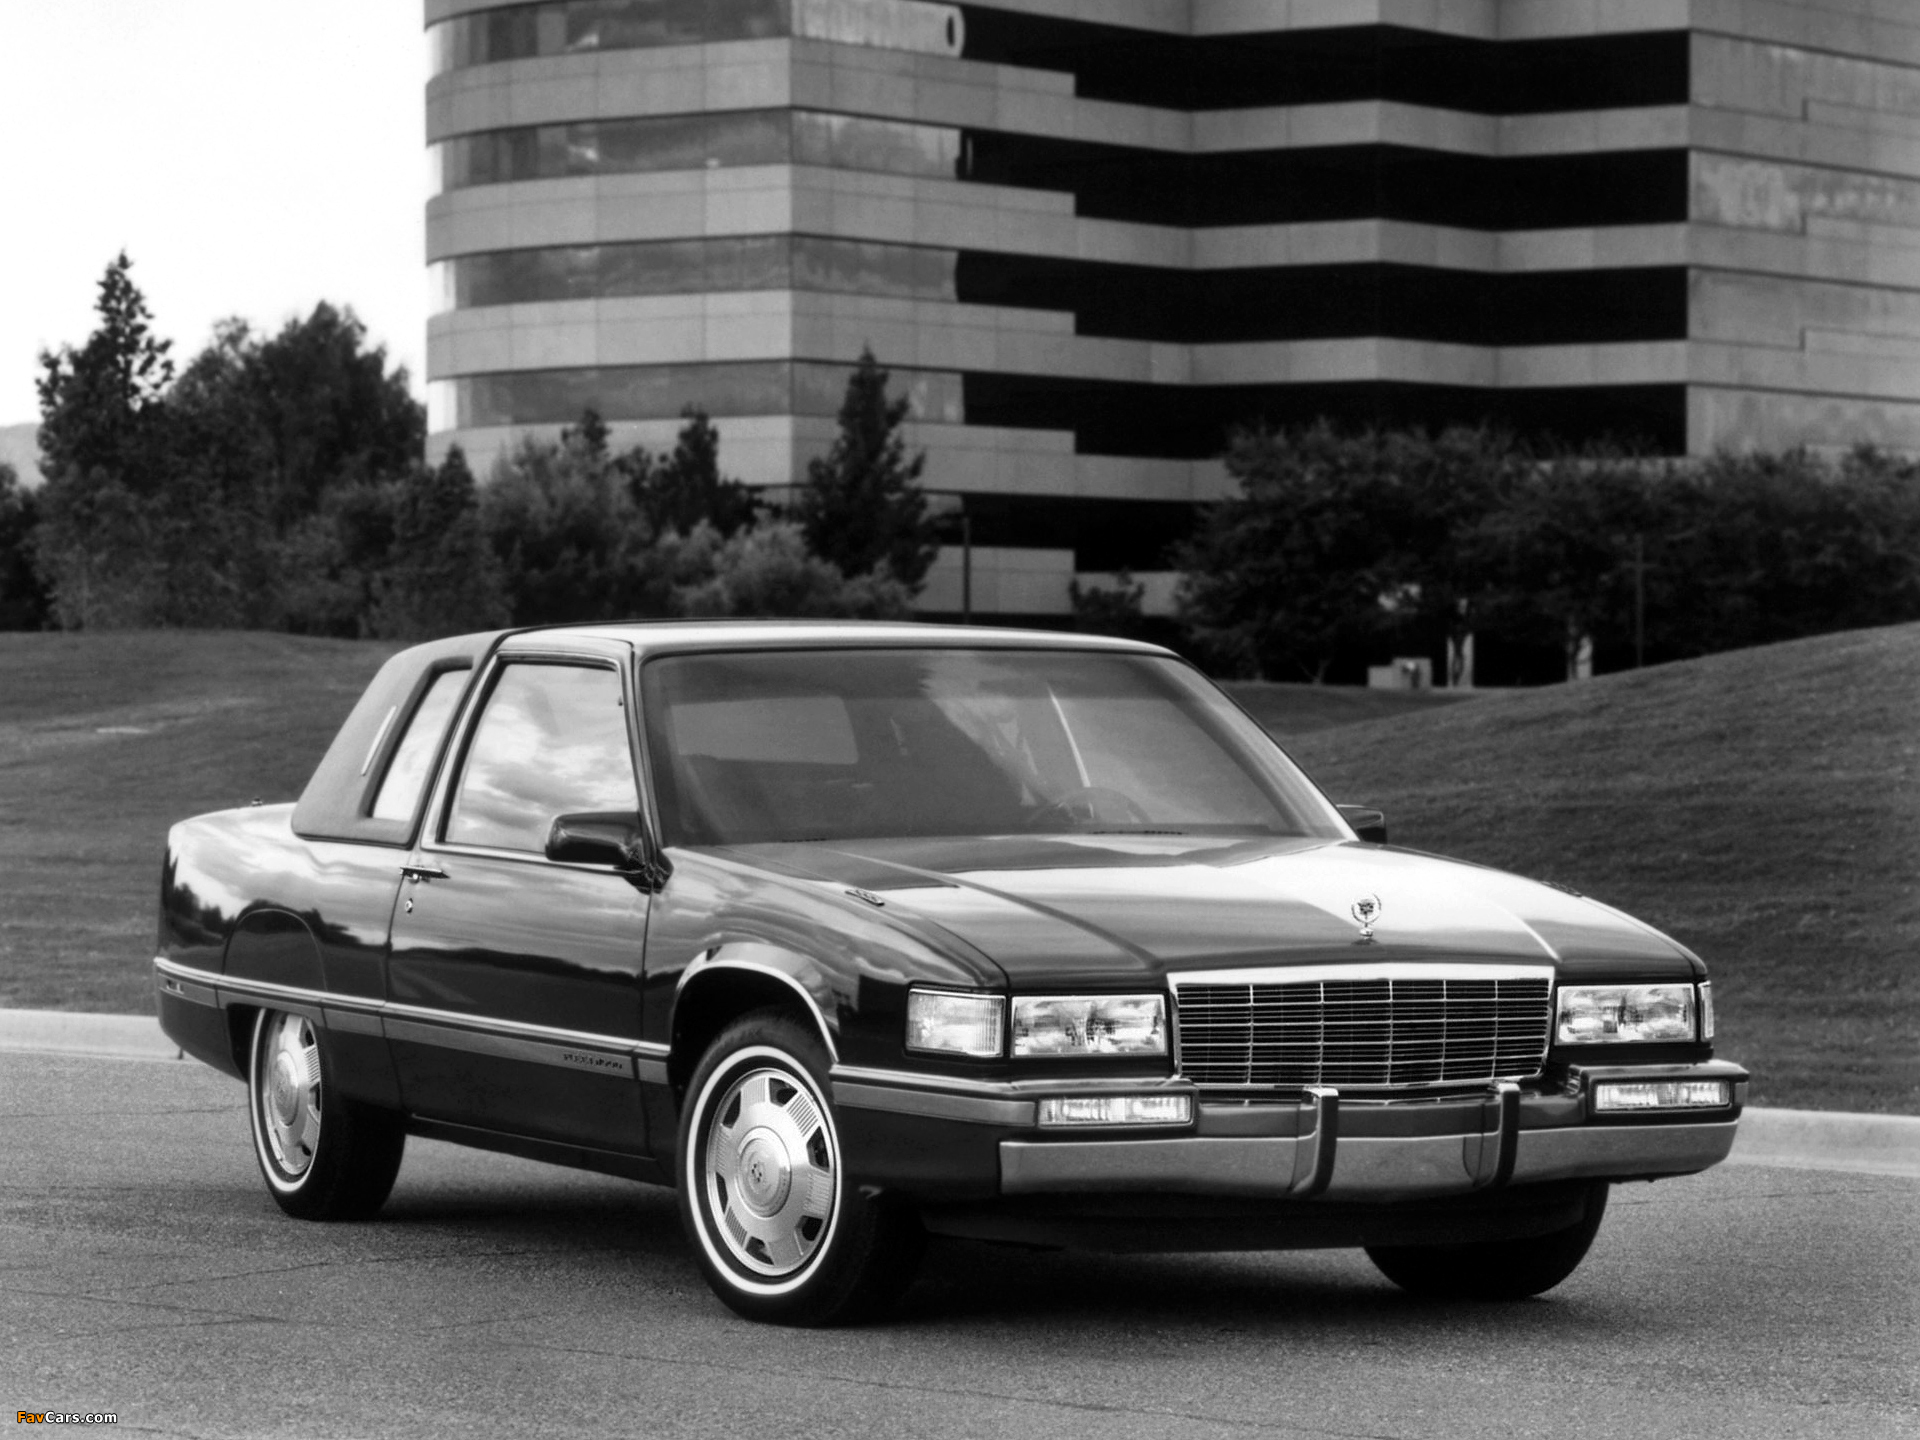 Pictures of Cadillac Fleetwood Coupe 1991-92 (1920x1440)